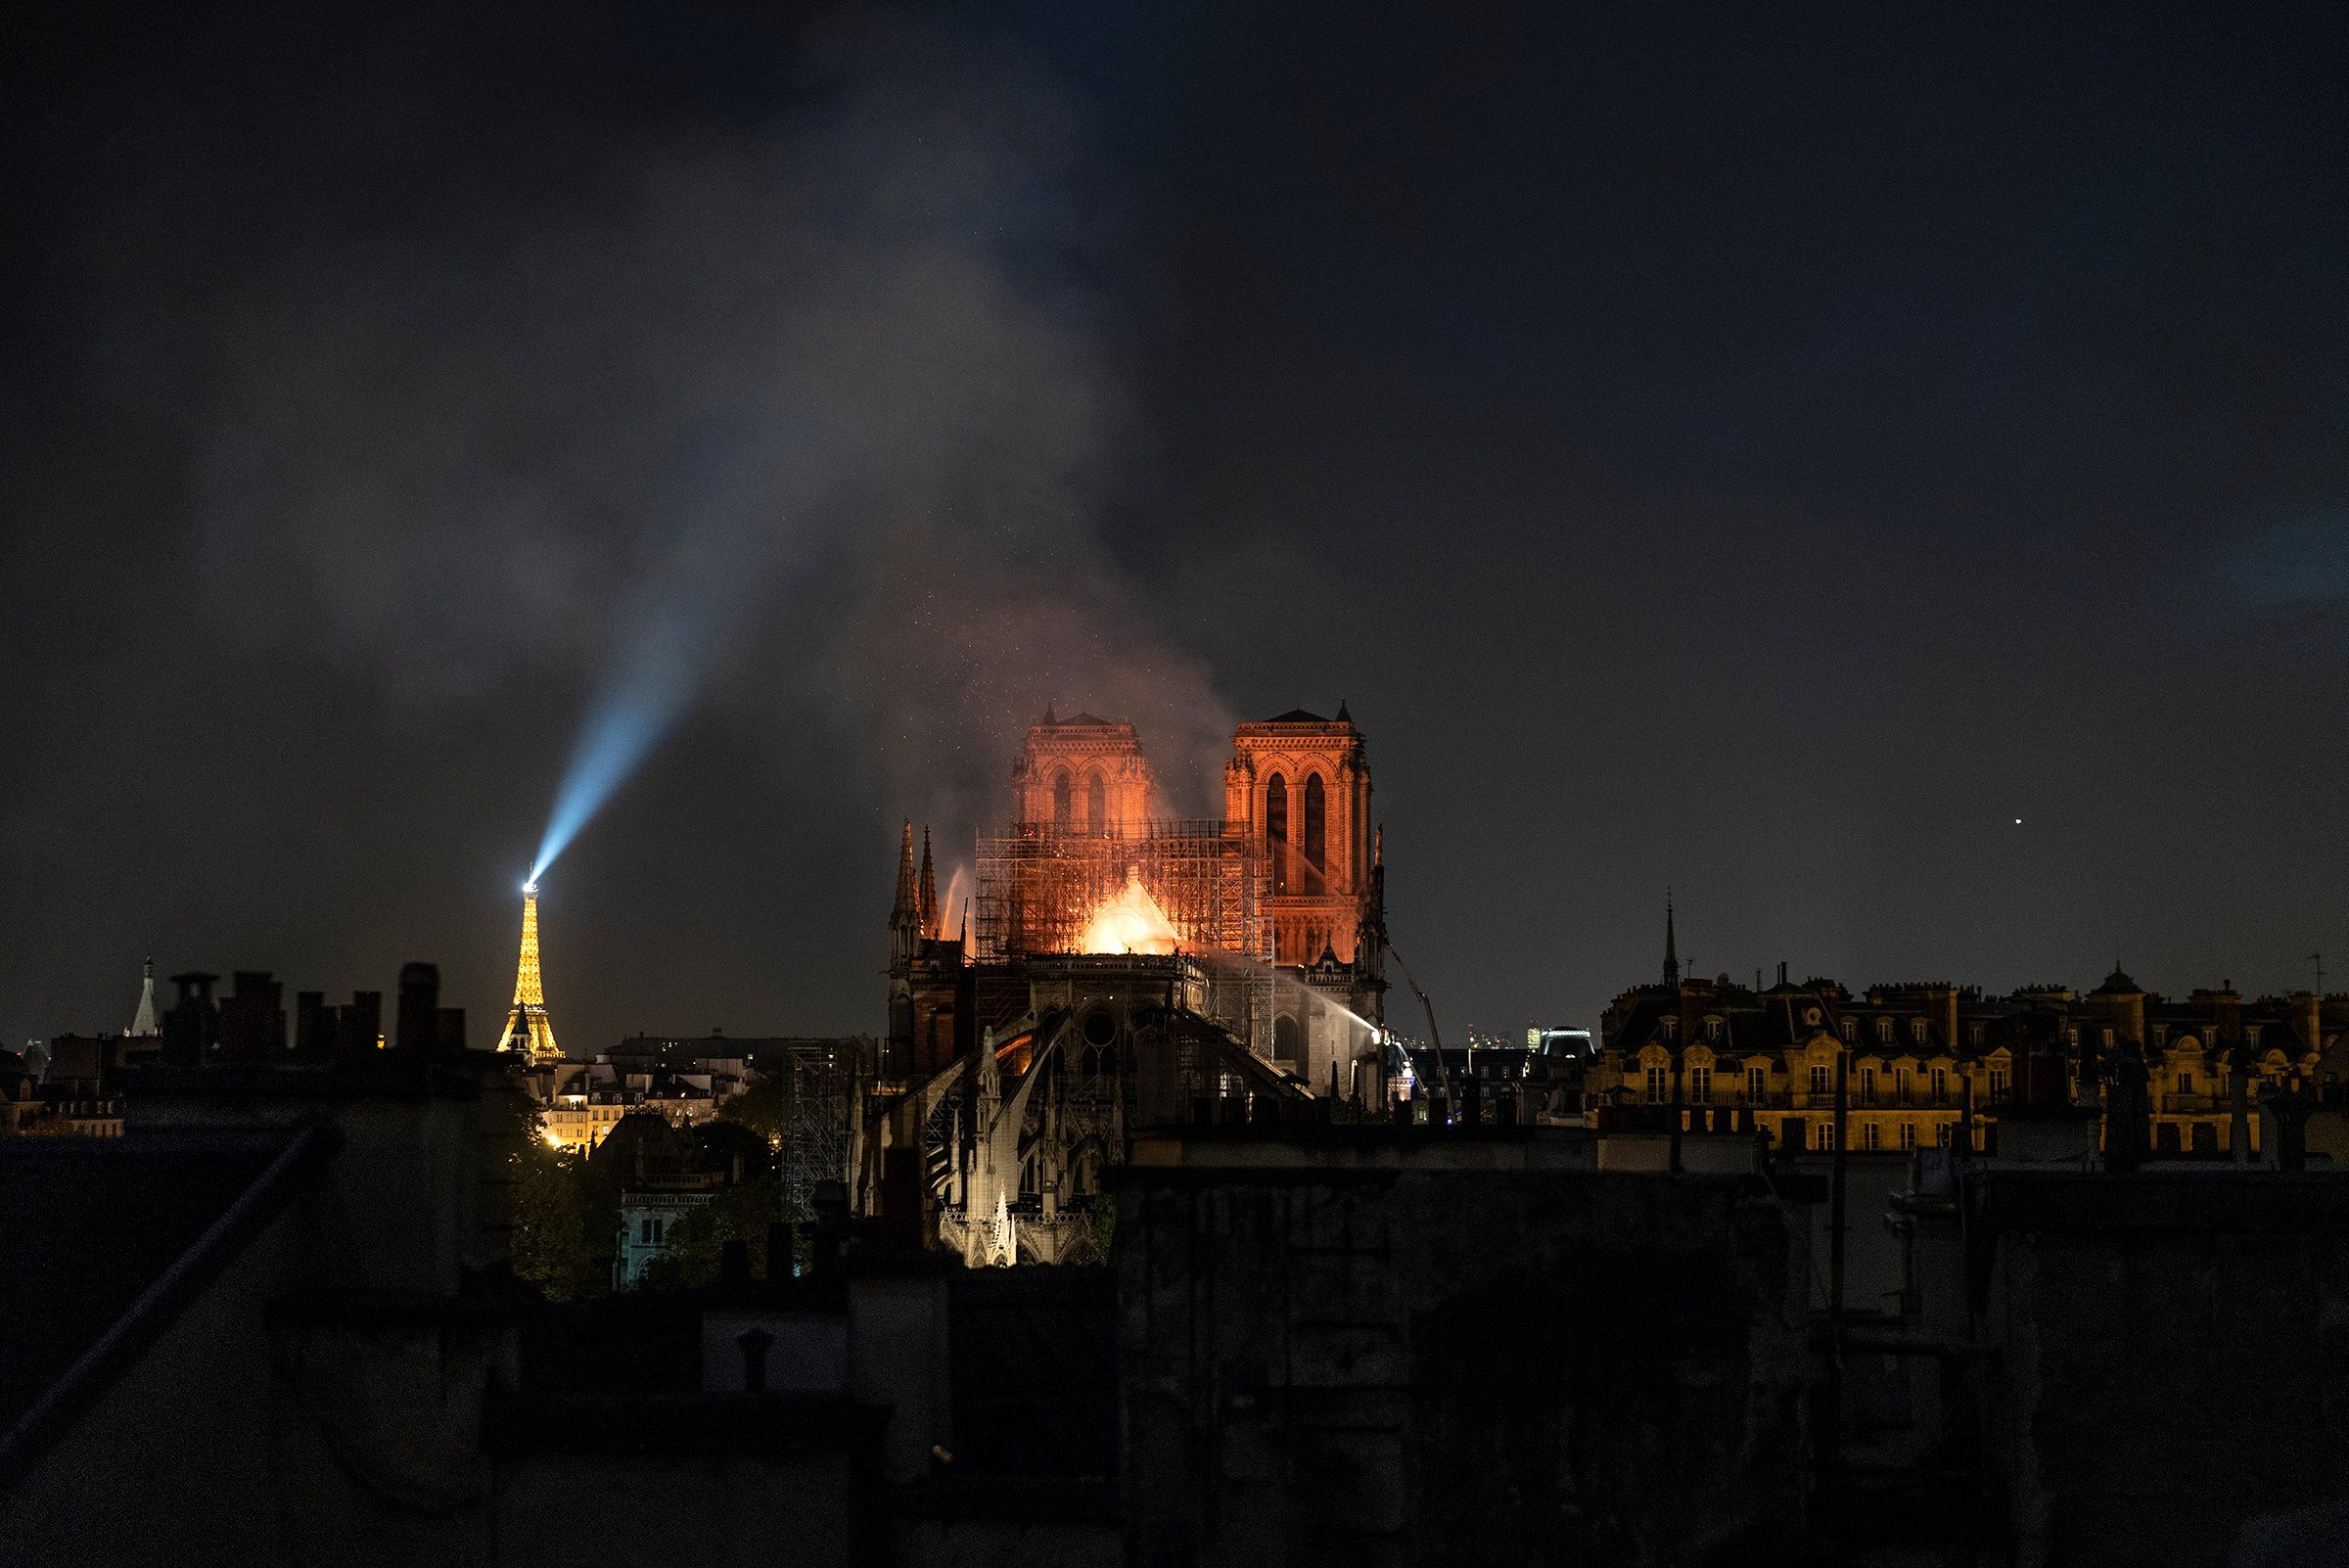 Smoke and flames rise from Notre Dame in Paris on April 15. The city was in flames months before the blaze at the cathedral. Protesters enraged over President Emmanuel Macron's economic plans had smashed storefronts and vandalized ATMs. But the smoke that filled the sky that day seemed to give the beleaguered city a sense of unity. Soon, another took hold: how to rebuild?